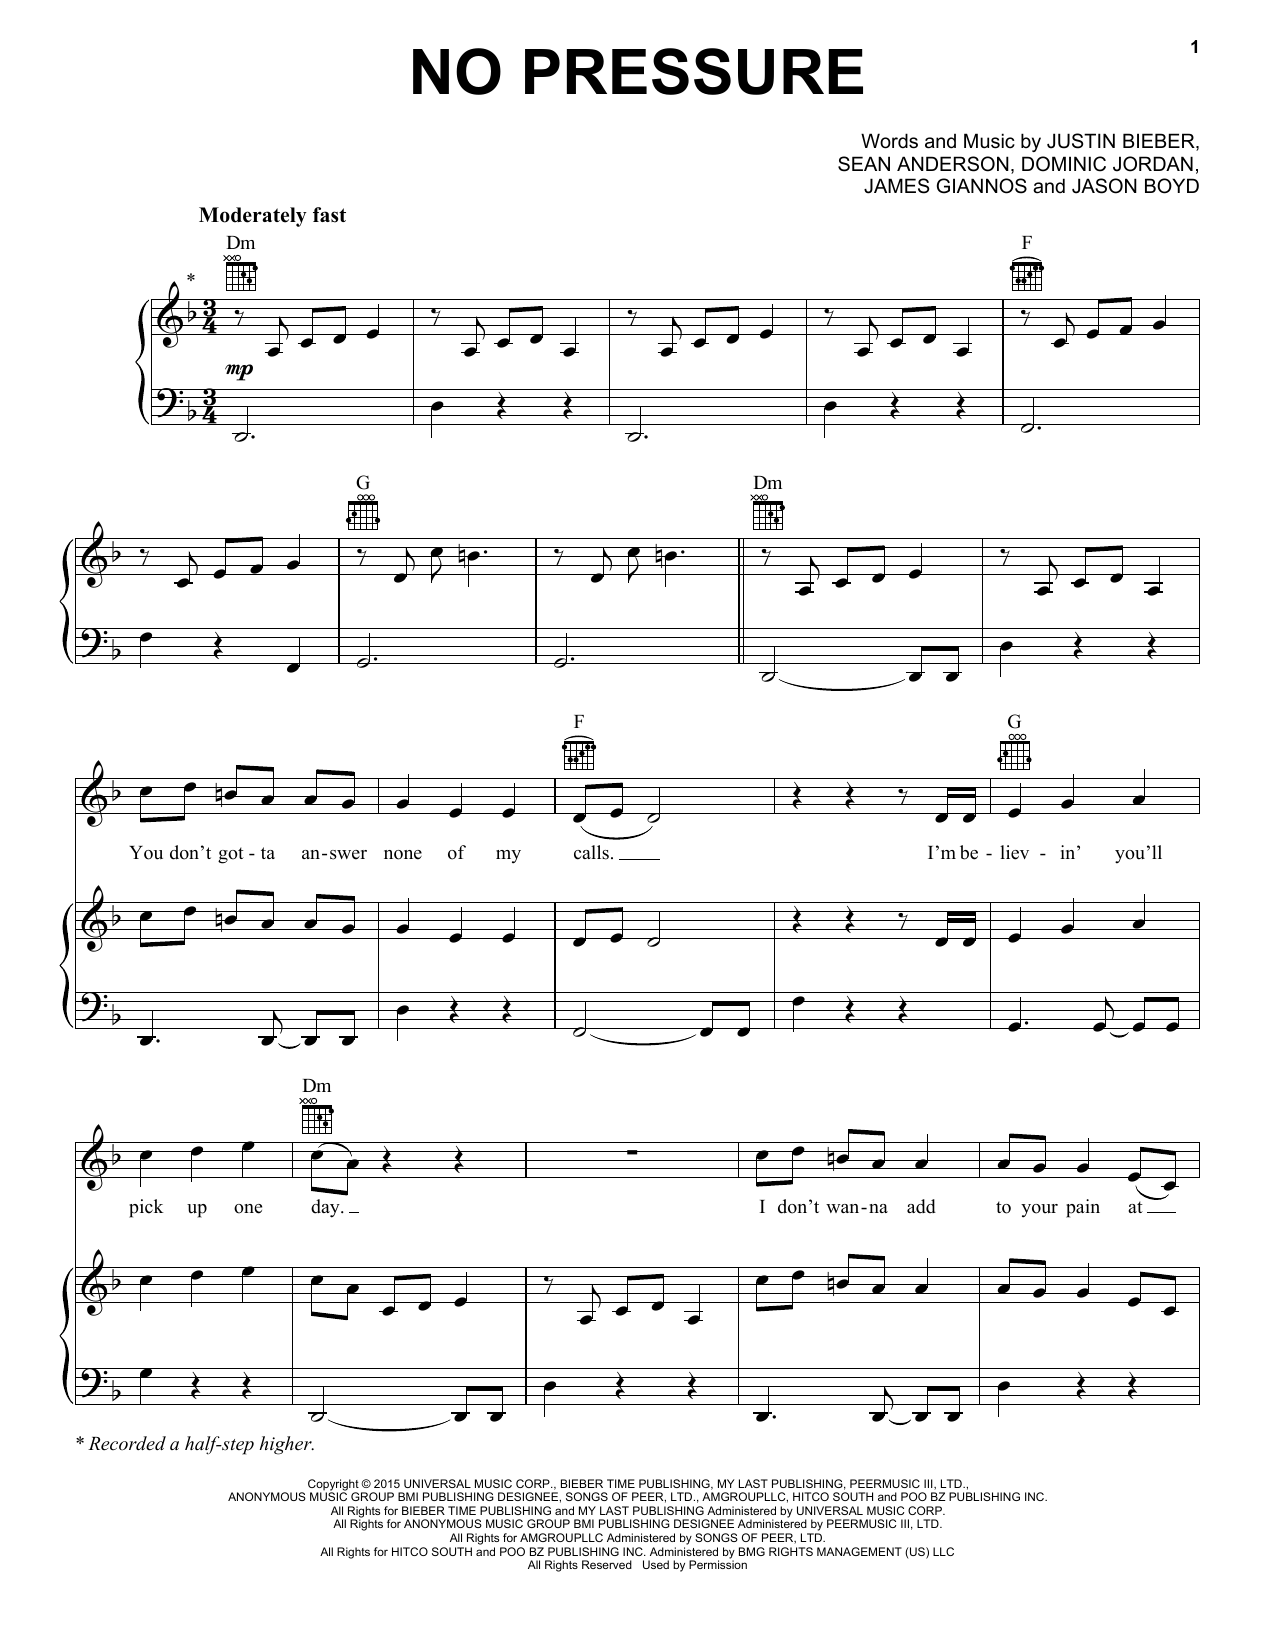 Justin Bieber No Pressure sheet music notes and chords. Download Printable PDF.